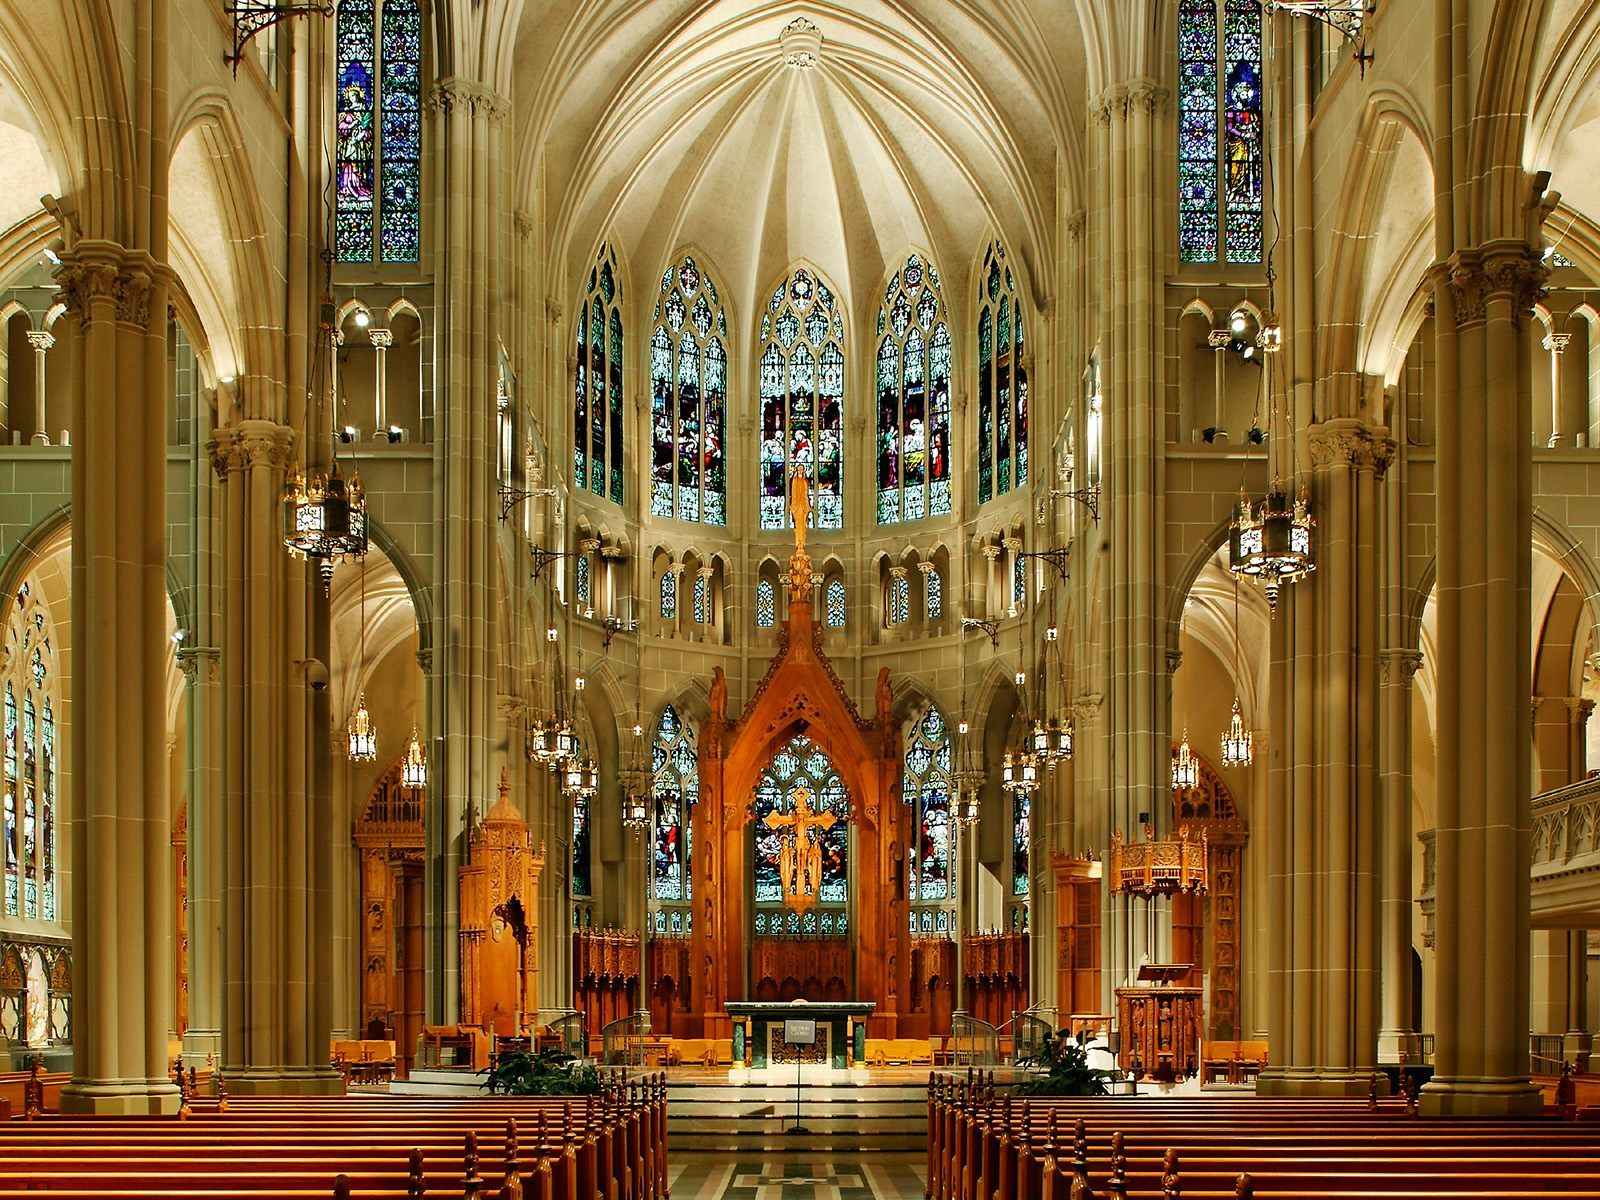 Kentucky | St. Mary's Catholic Basilica Cathedral in Covington, KY - Inside view from your Trinity Stores crew.